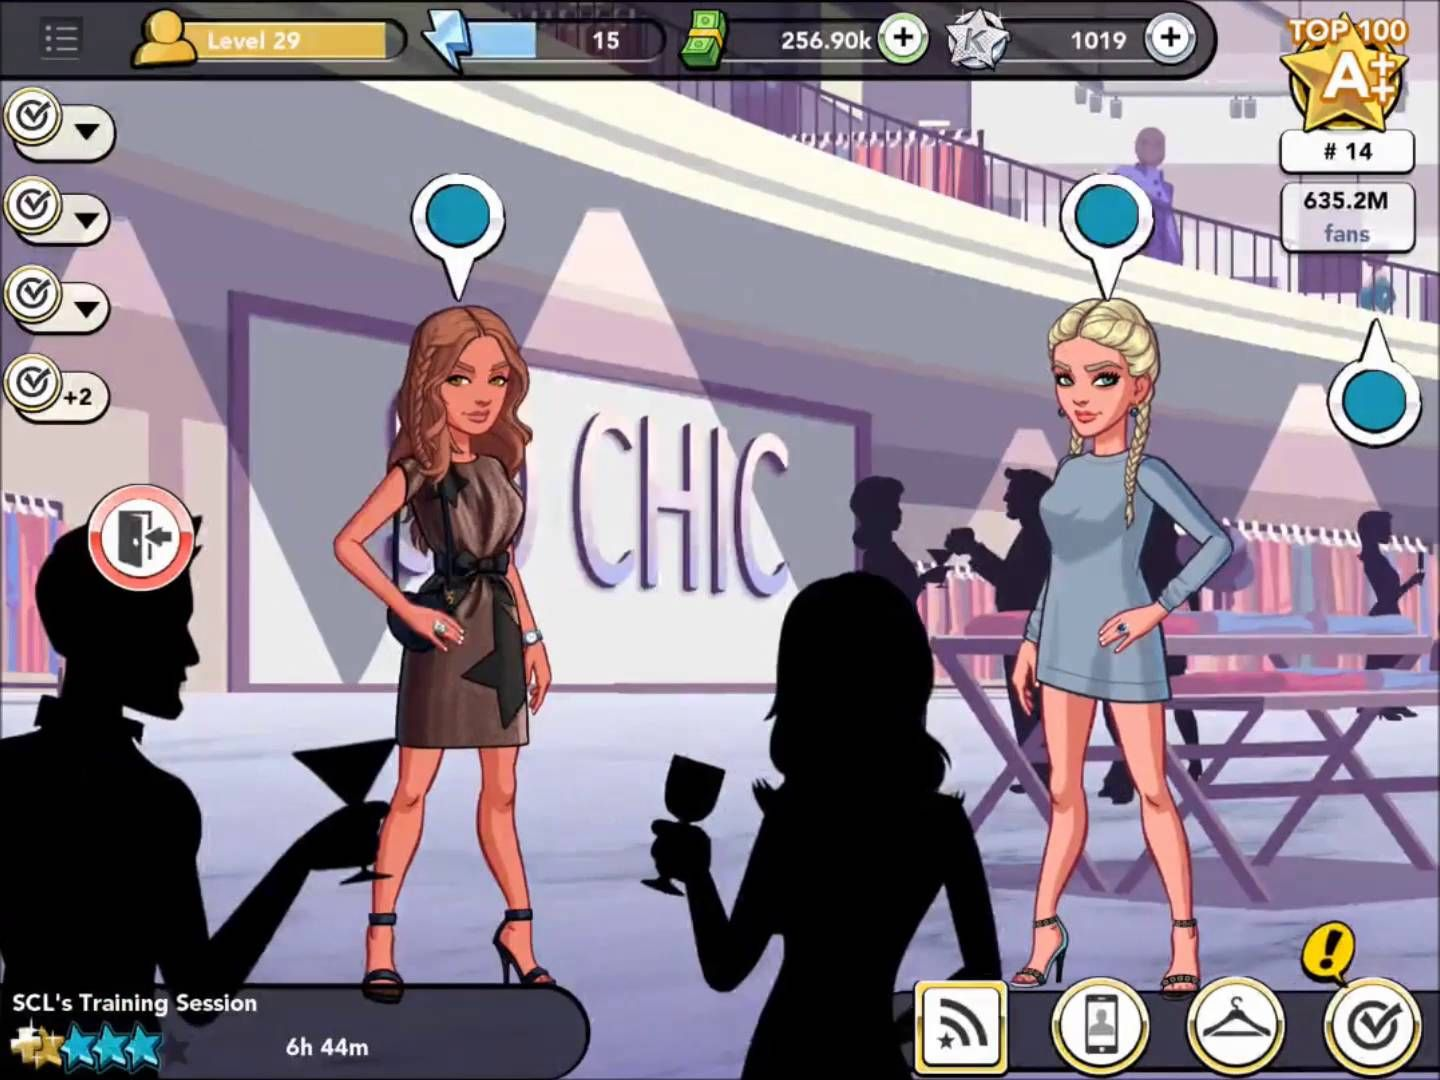 kim kardashian hollywood hack 2018 ios